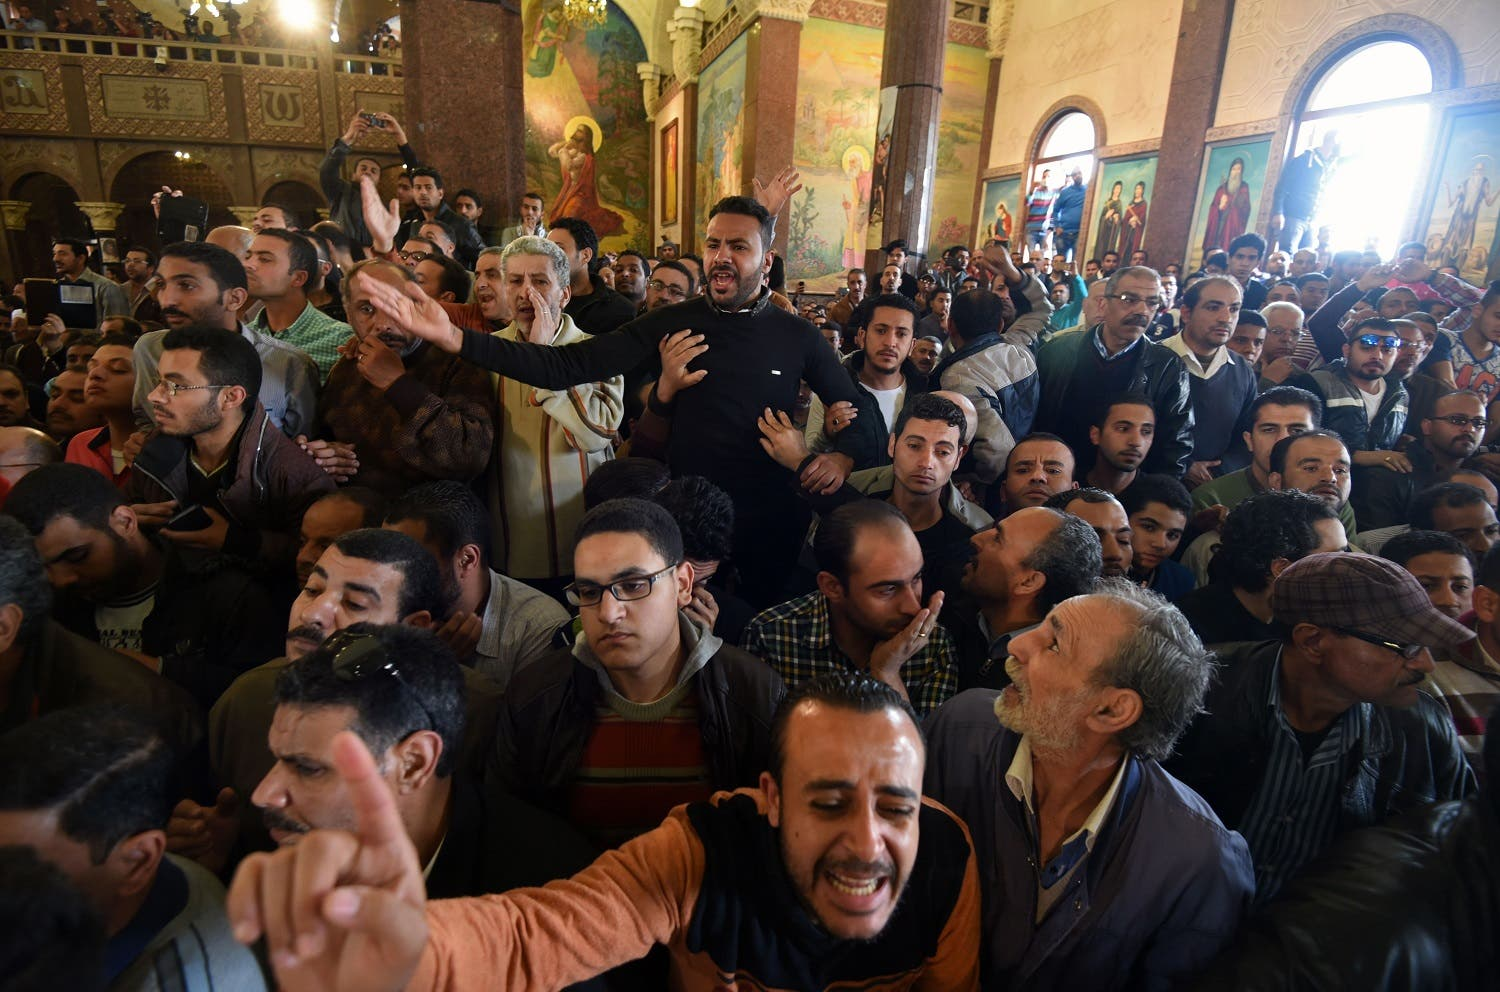 Men mourn for the victims of the blast at the Coptic Christian Saint Mark's church in Alexandria the previous day during a funeral procession at the Monastery of Marmina in the city of Borg El-Arab, east of the northern port city, on April 10, 2017. Egypt prepared to impose a state of emergency after jihadist bombings killed dozens at two churches in the deadliest attacks in recent memory on the country's Coptic Christian minority. (AFP)